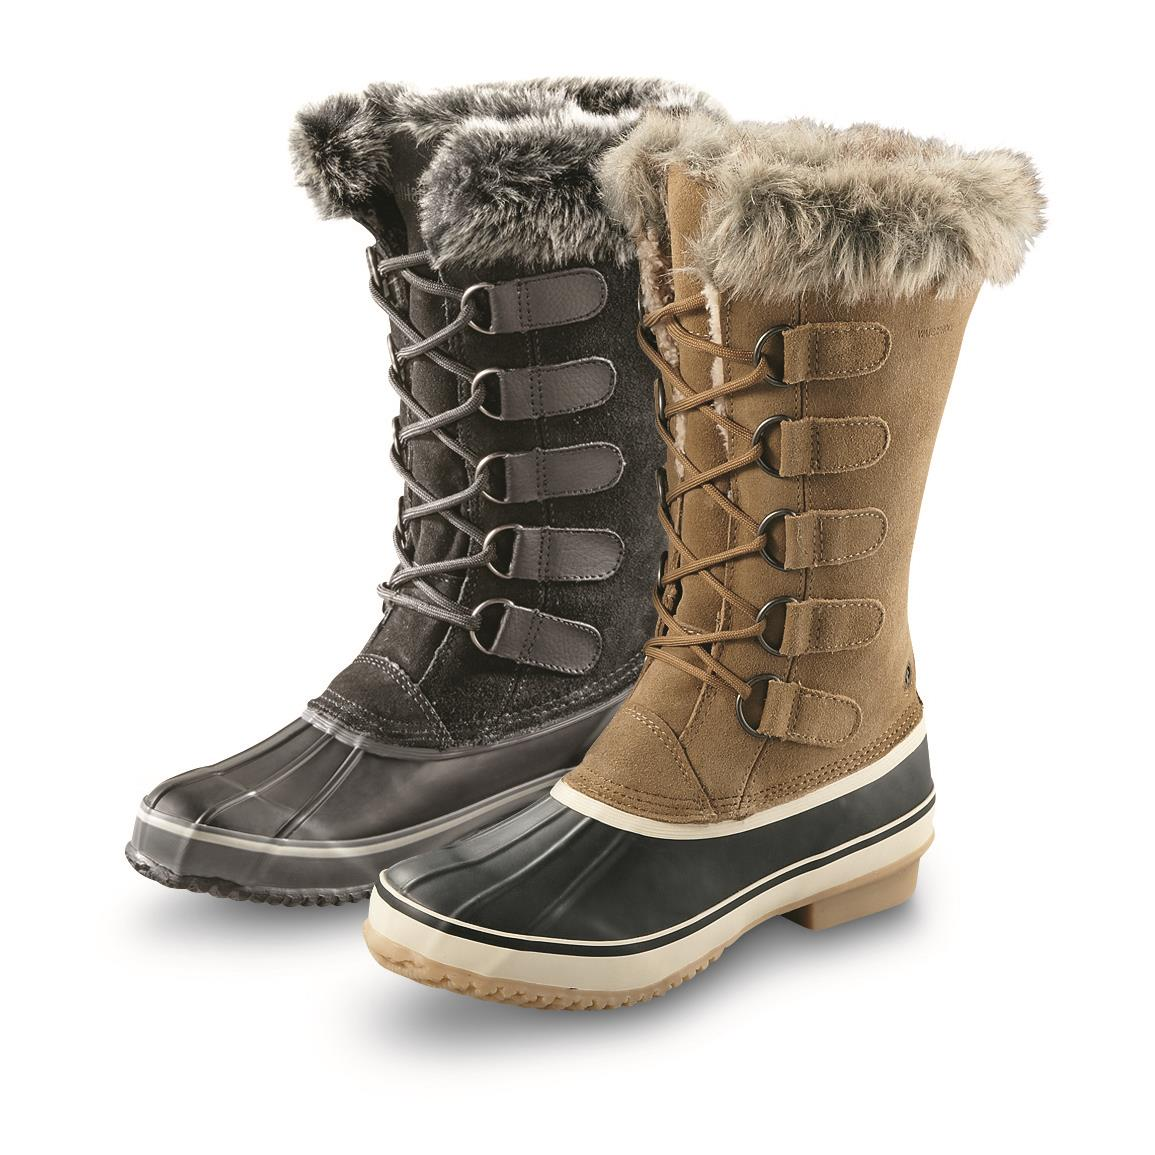 Northside Women's Kathmandu Insulated Waterproof Winter Boots, 200 Grams in Onyx and Honey